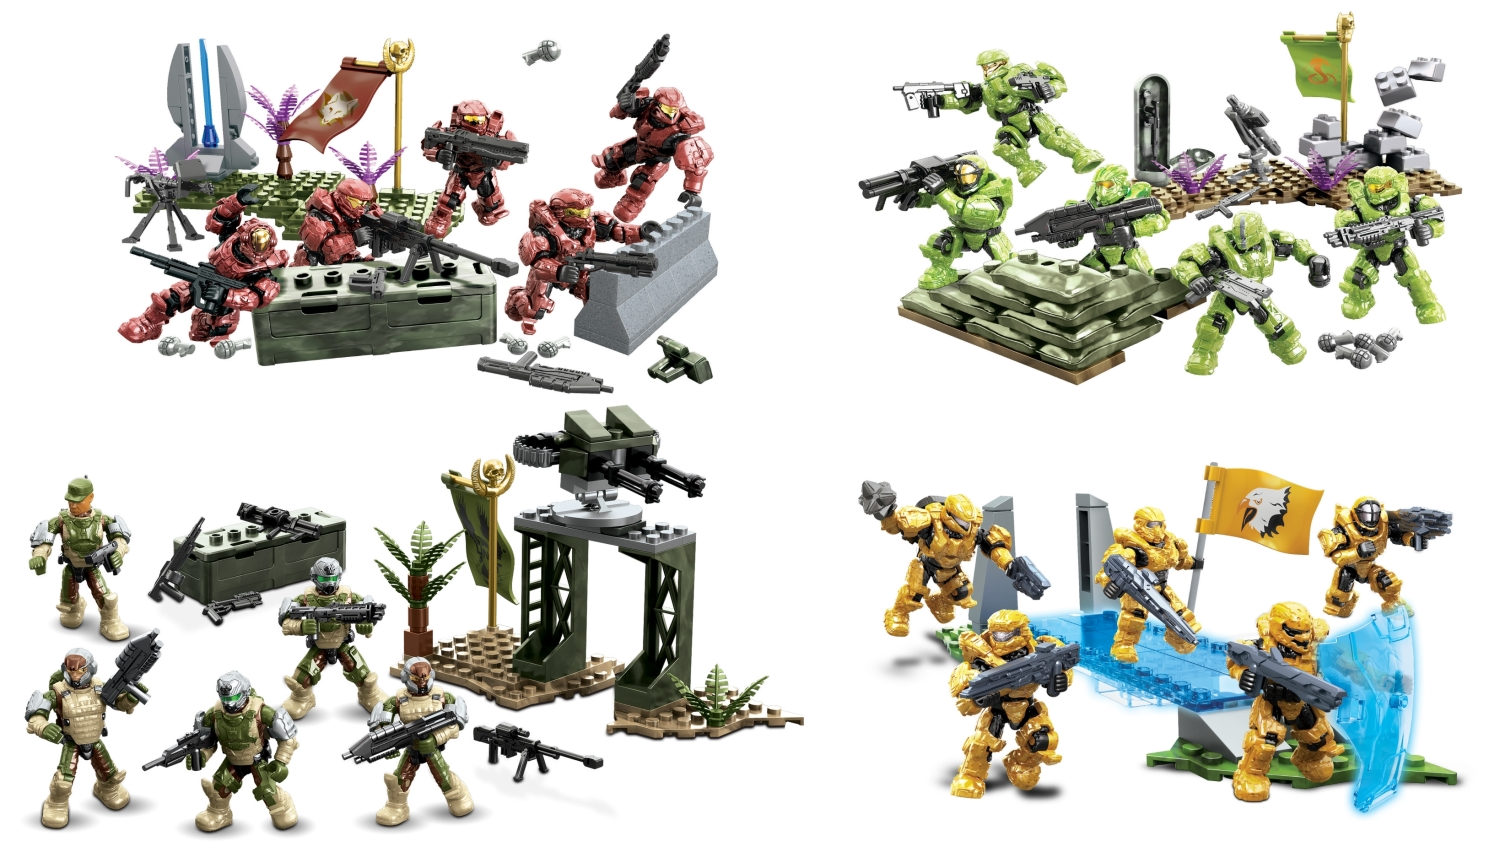 2015 Halo Mega Bloks <b>B.A. Toys Fireteam Reinforcement [Crimson, Venom, Eagle & Sierra]</b> is an officially licensed, authentic Mega Bloks Halo product at B.A. Toys featuring B.A. Toys Fireteam Reinforcement [Crimson, Venom, Eagle & Sierra] by Mega Bloks Halo